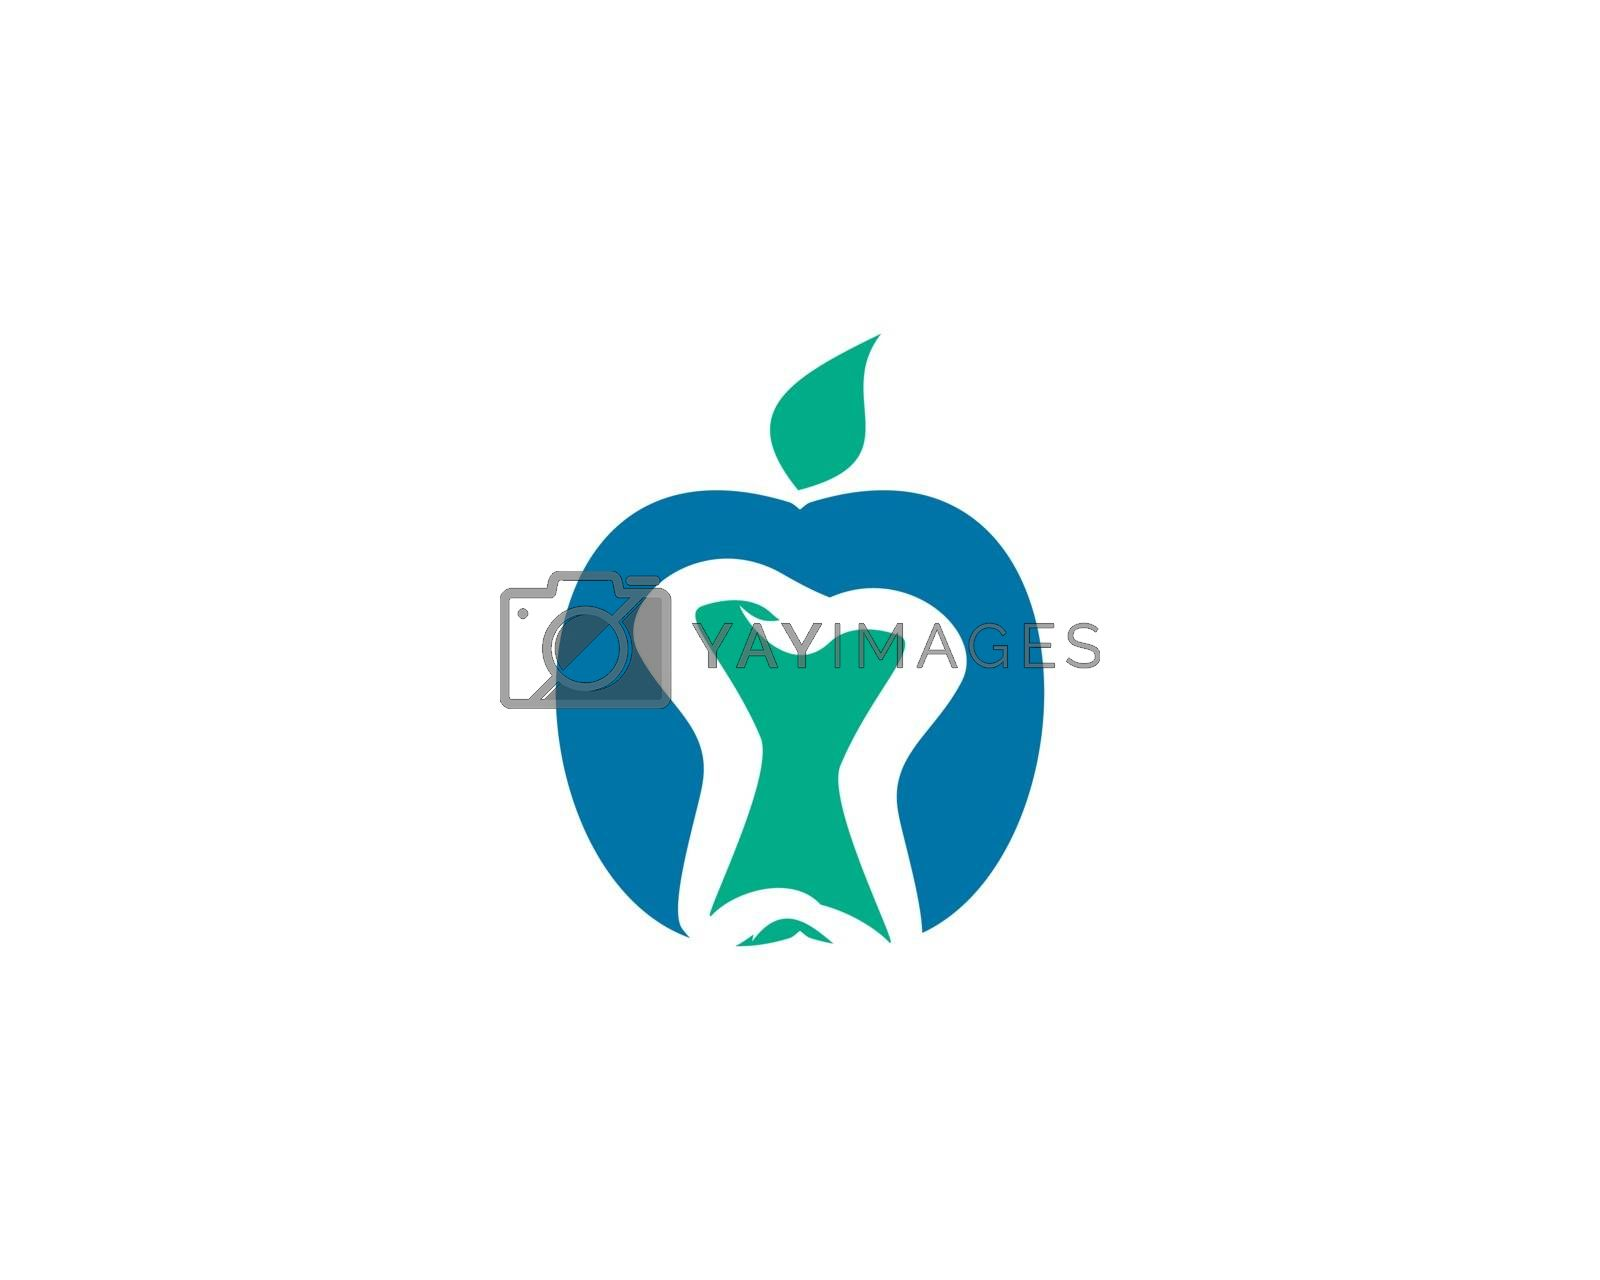 is a symbol in the form of teeth symbolizing dental care, dental treatment or dental clinic